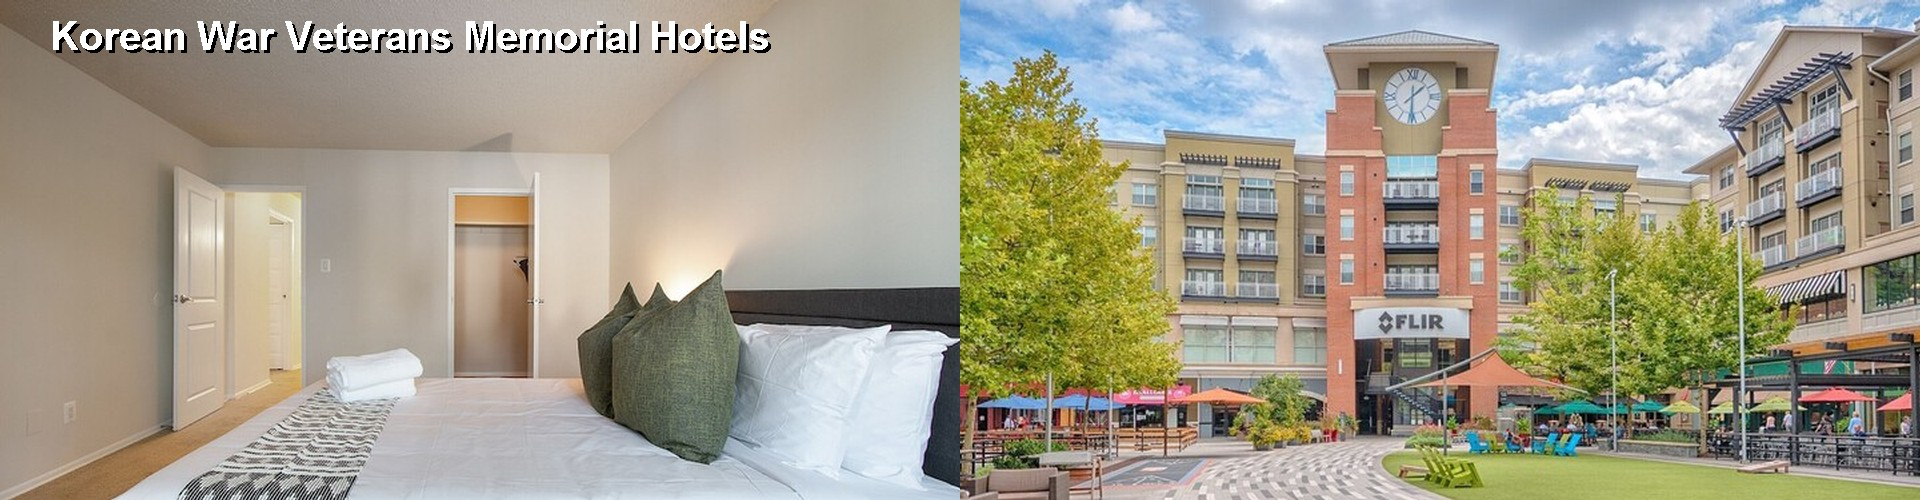 5 Best Hotels near Korean War Veterans Memorial